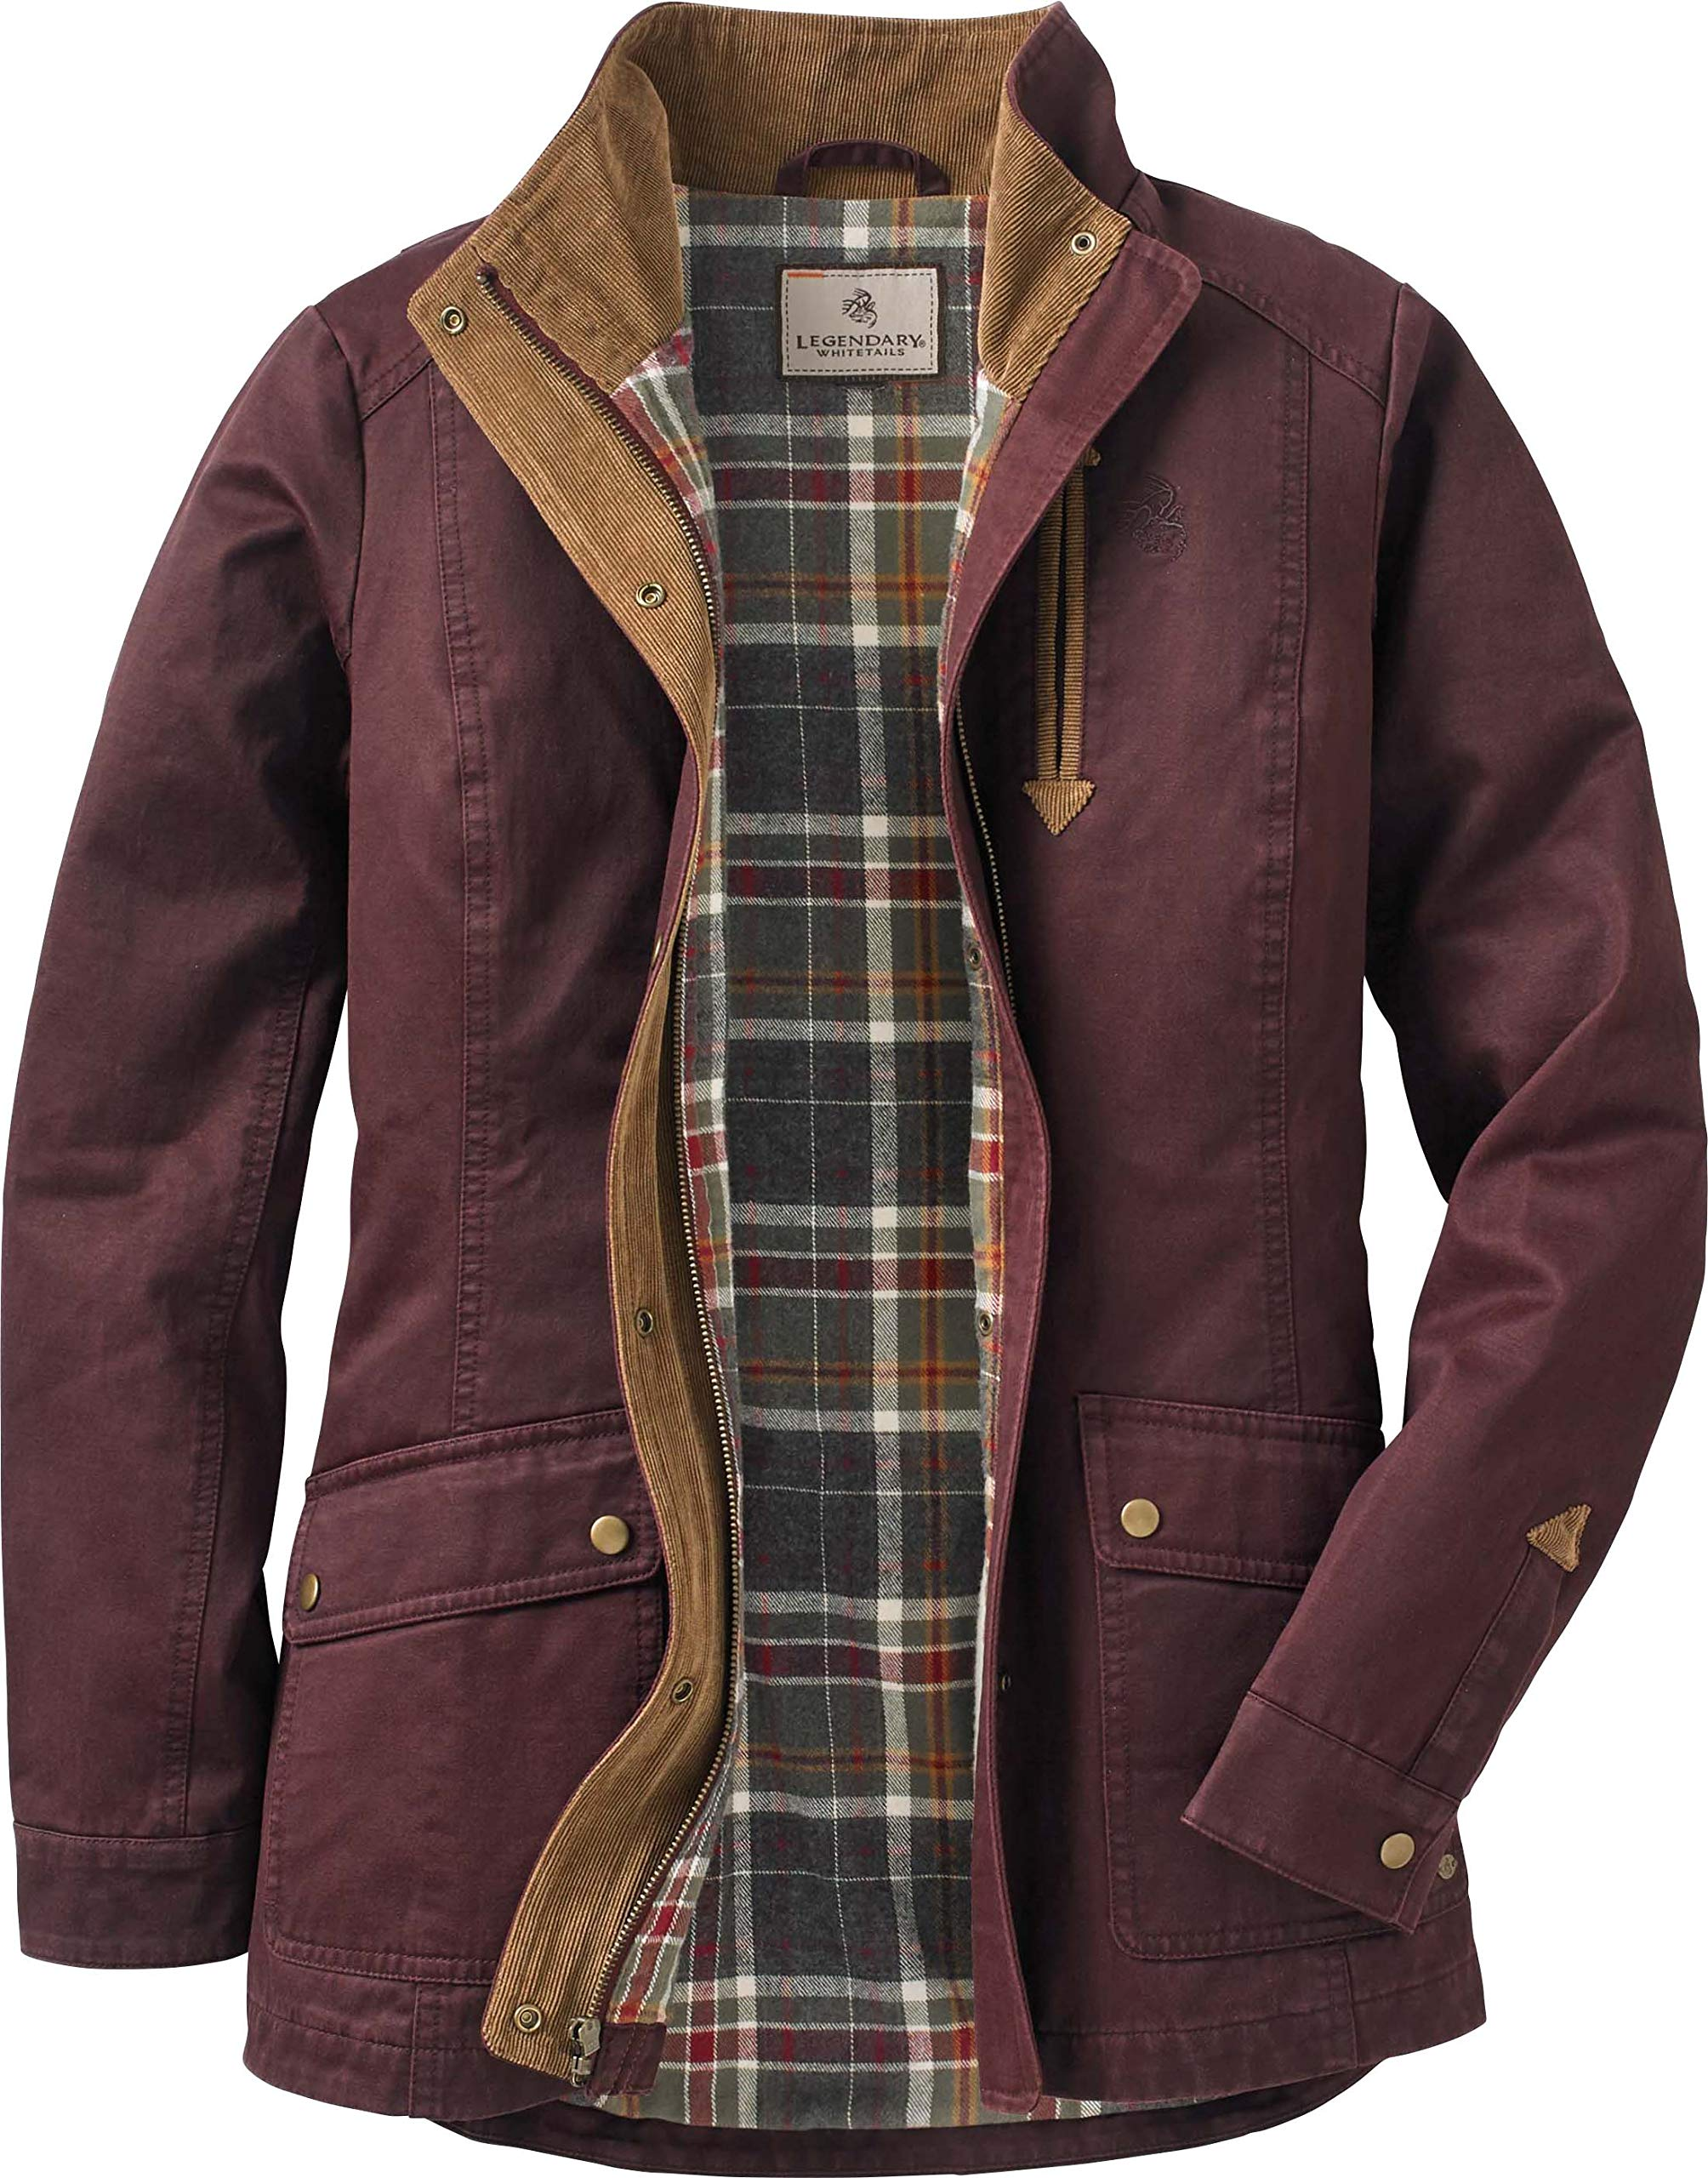 Legendary Whitetails Womens Saddle Country Shirt Jacket, Rusty Maroon, X-Small by Legendary Whitetails